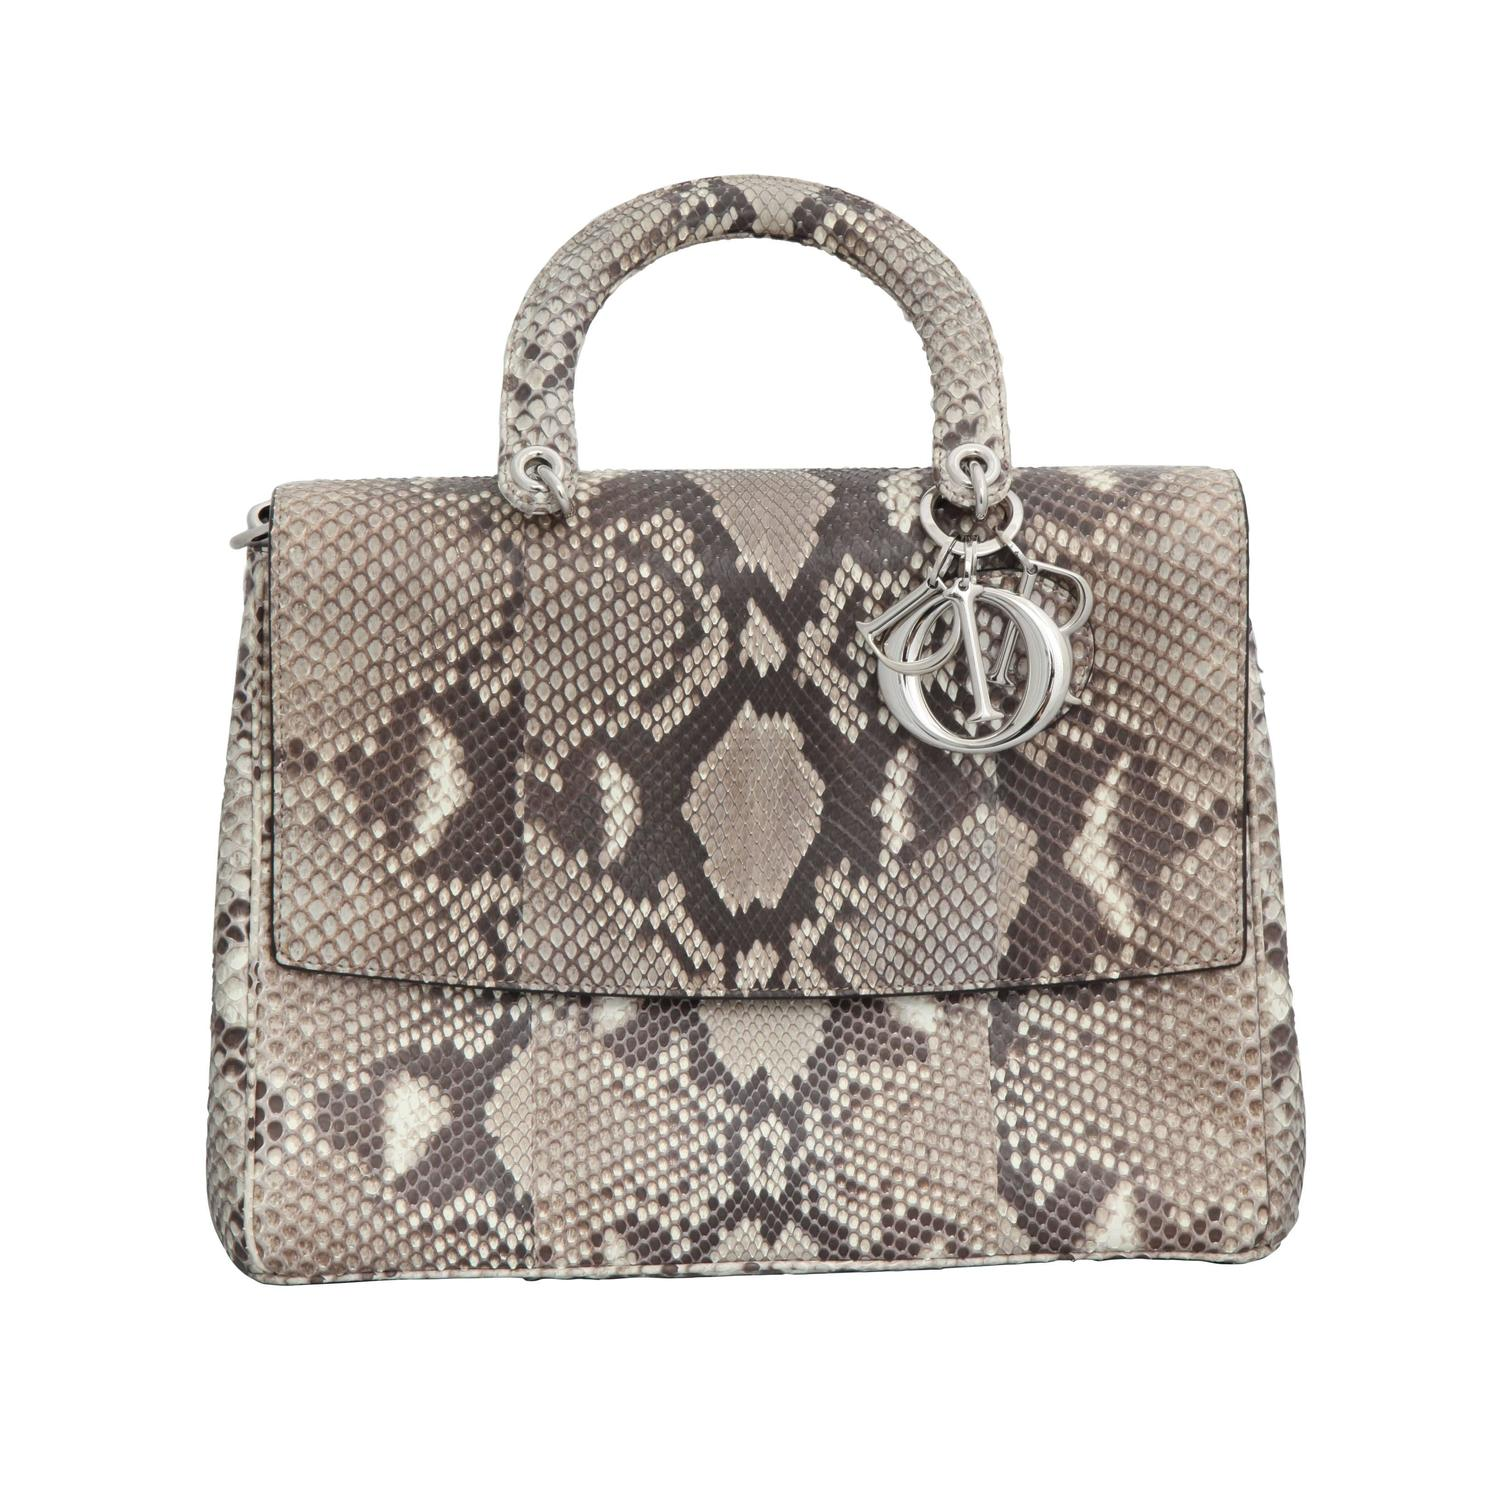 Amazing Christian Dior Python Be Dior Quot Bag New In Box For